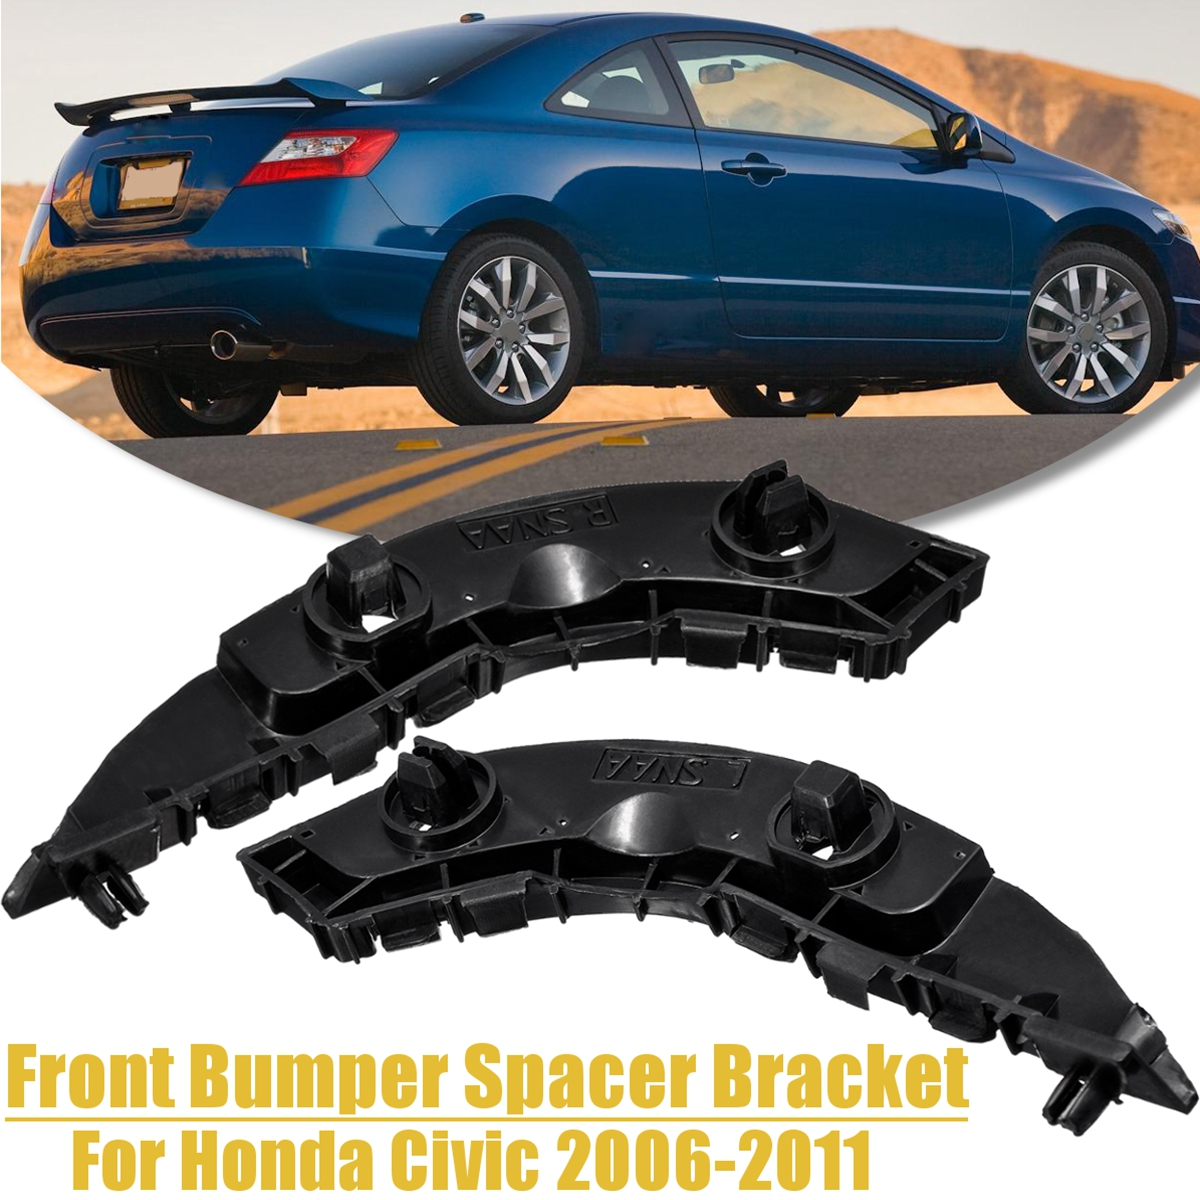 Bumper Bracket For 2006-2011 Honda Civic Sedan Models Front Passenger Side